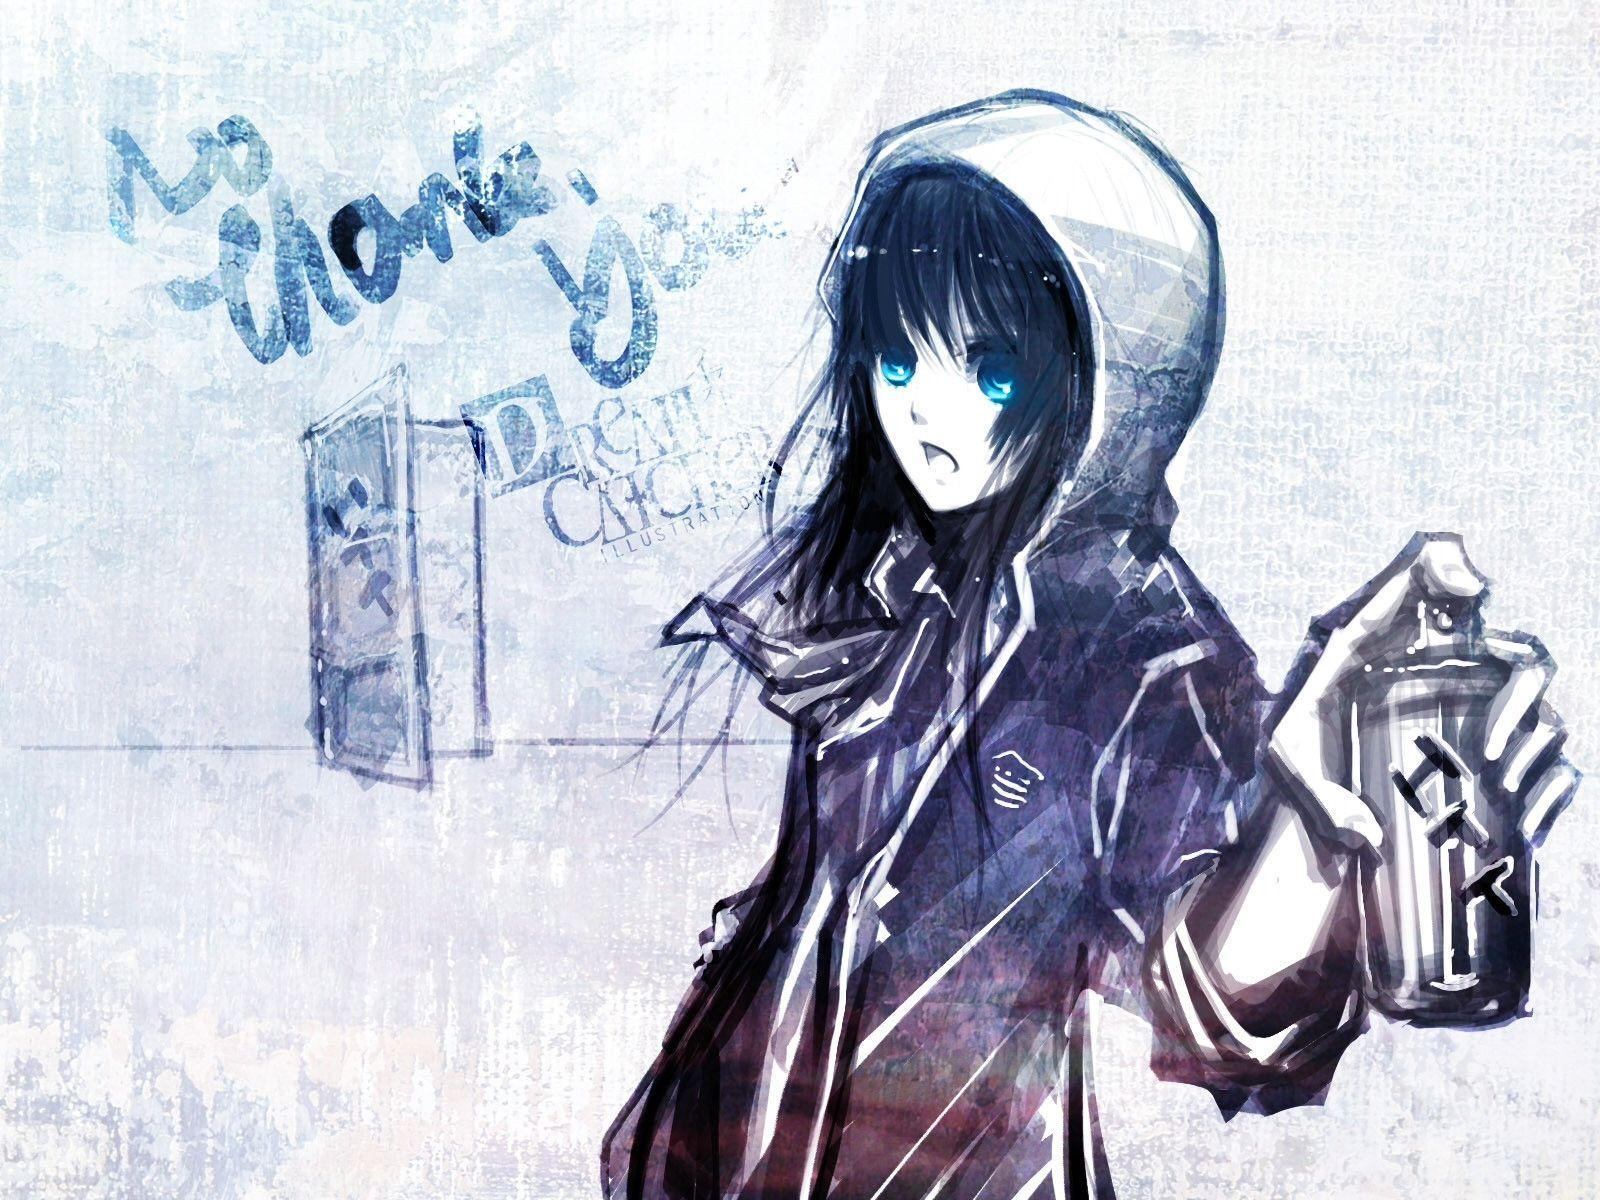 Emo anime wallpapers wallpaper cave - Emo anime wallpaper ...